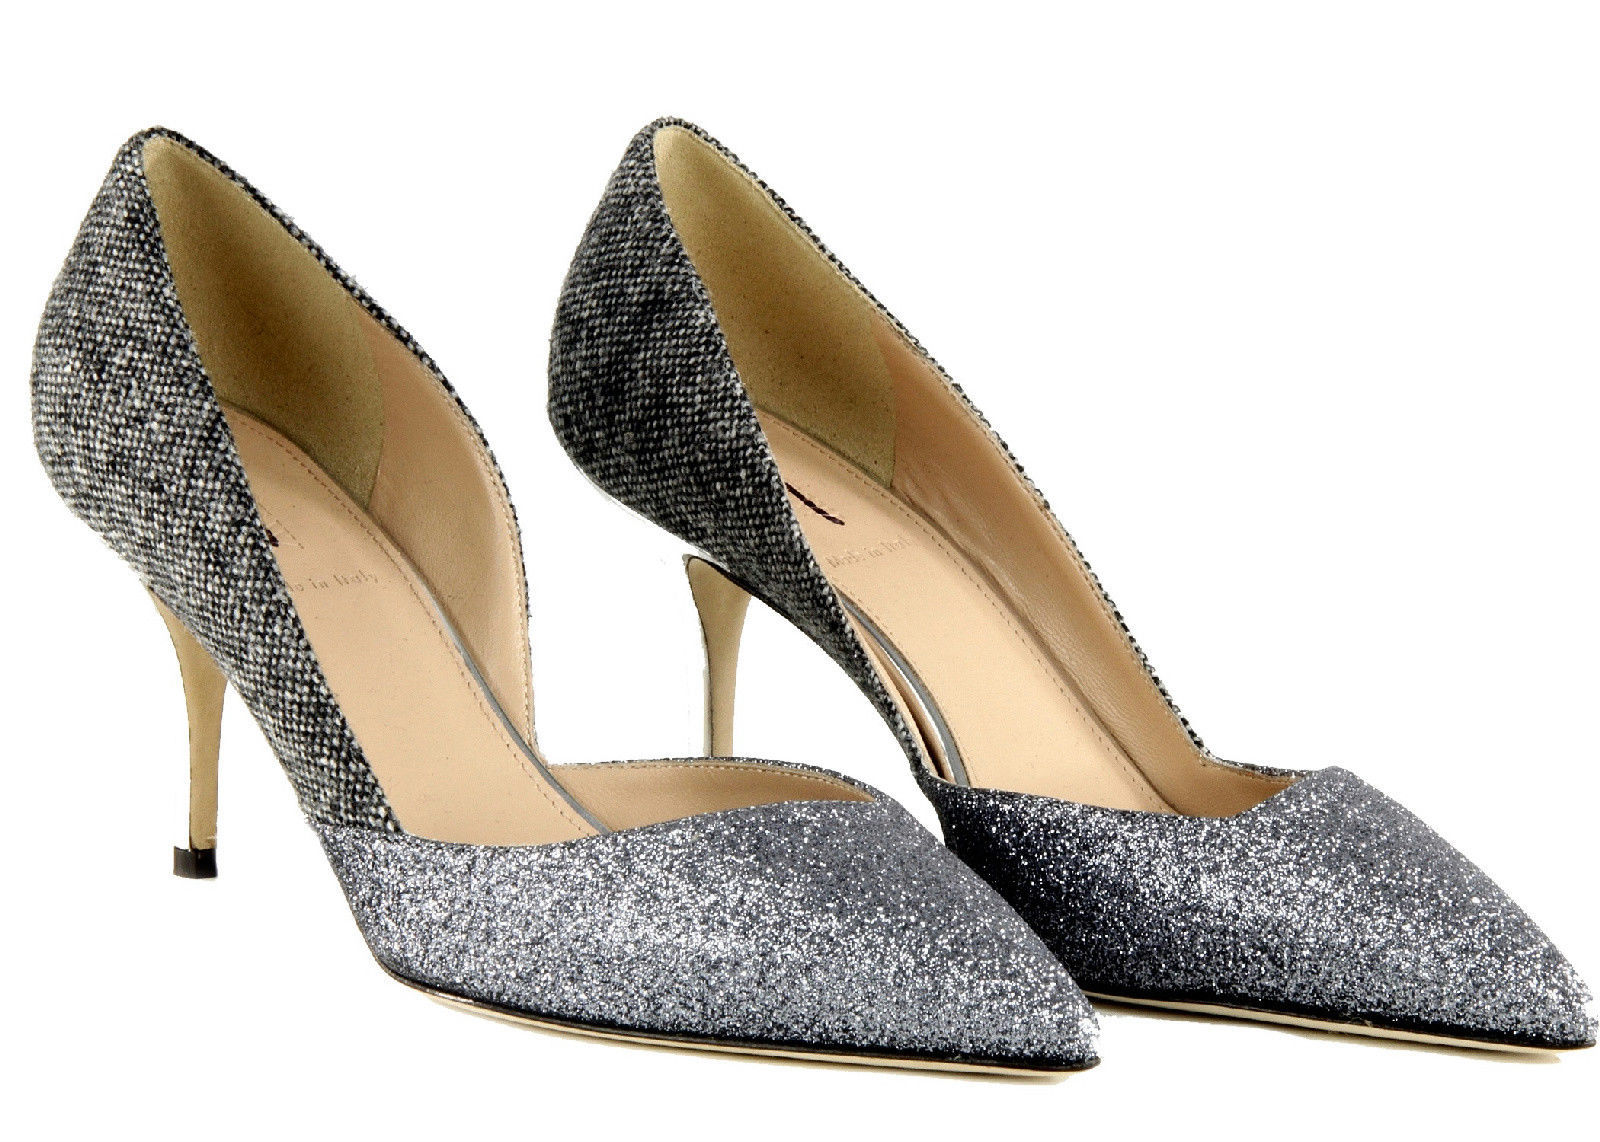 0bf3cf96f46 J Crew Colette Glitter D Orsay Pumps 7 E0757 and 32 similar items